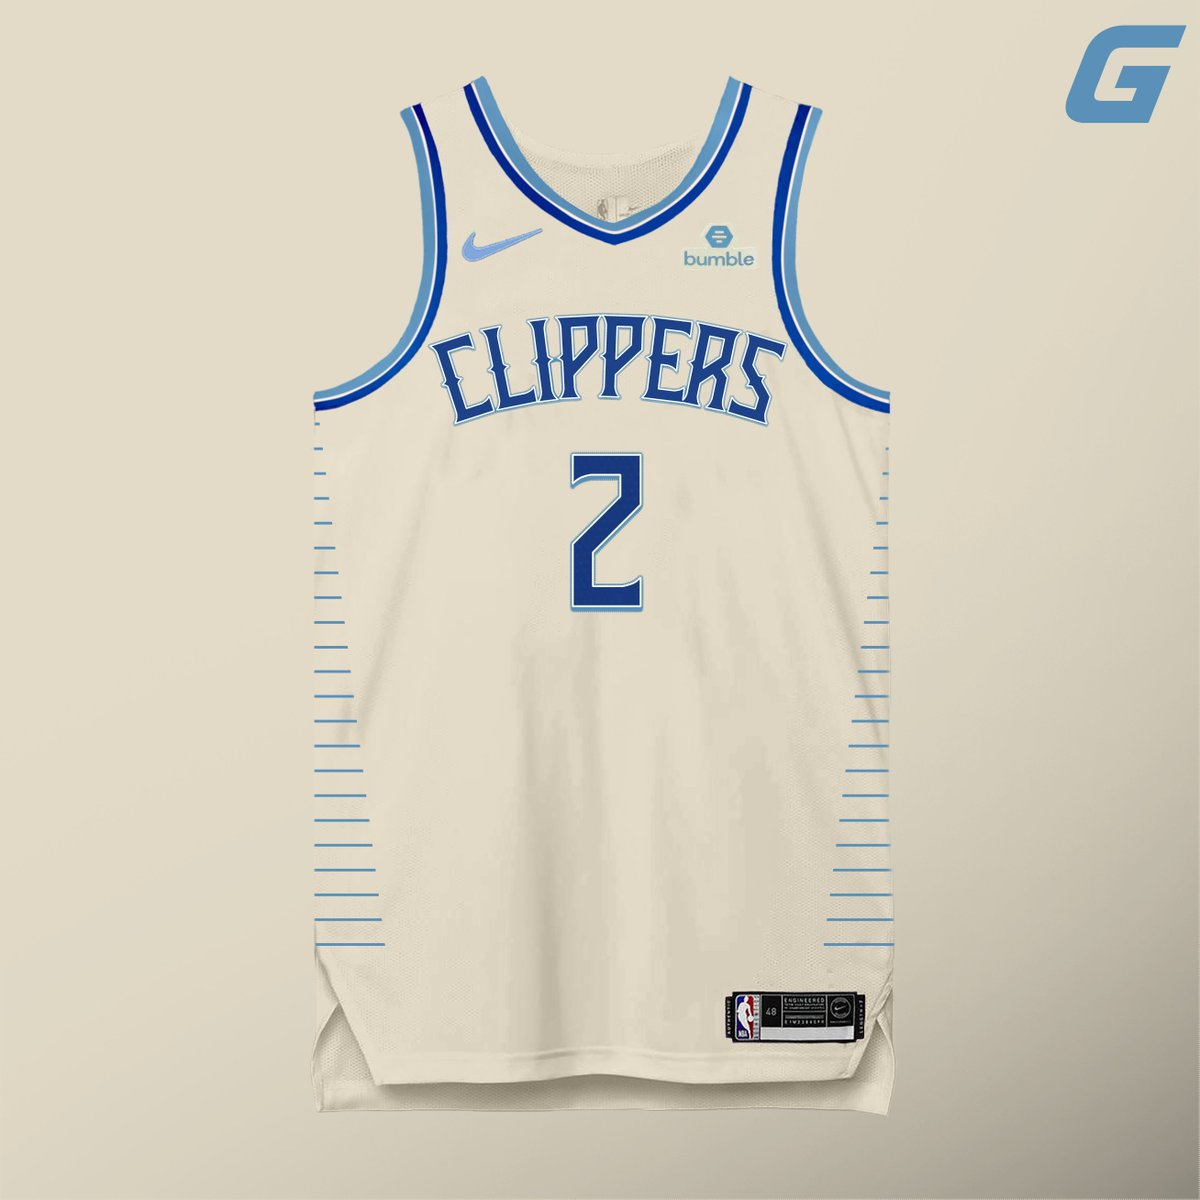 gave the Clippers a new look https://t.co/ERgZ92wtxo